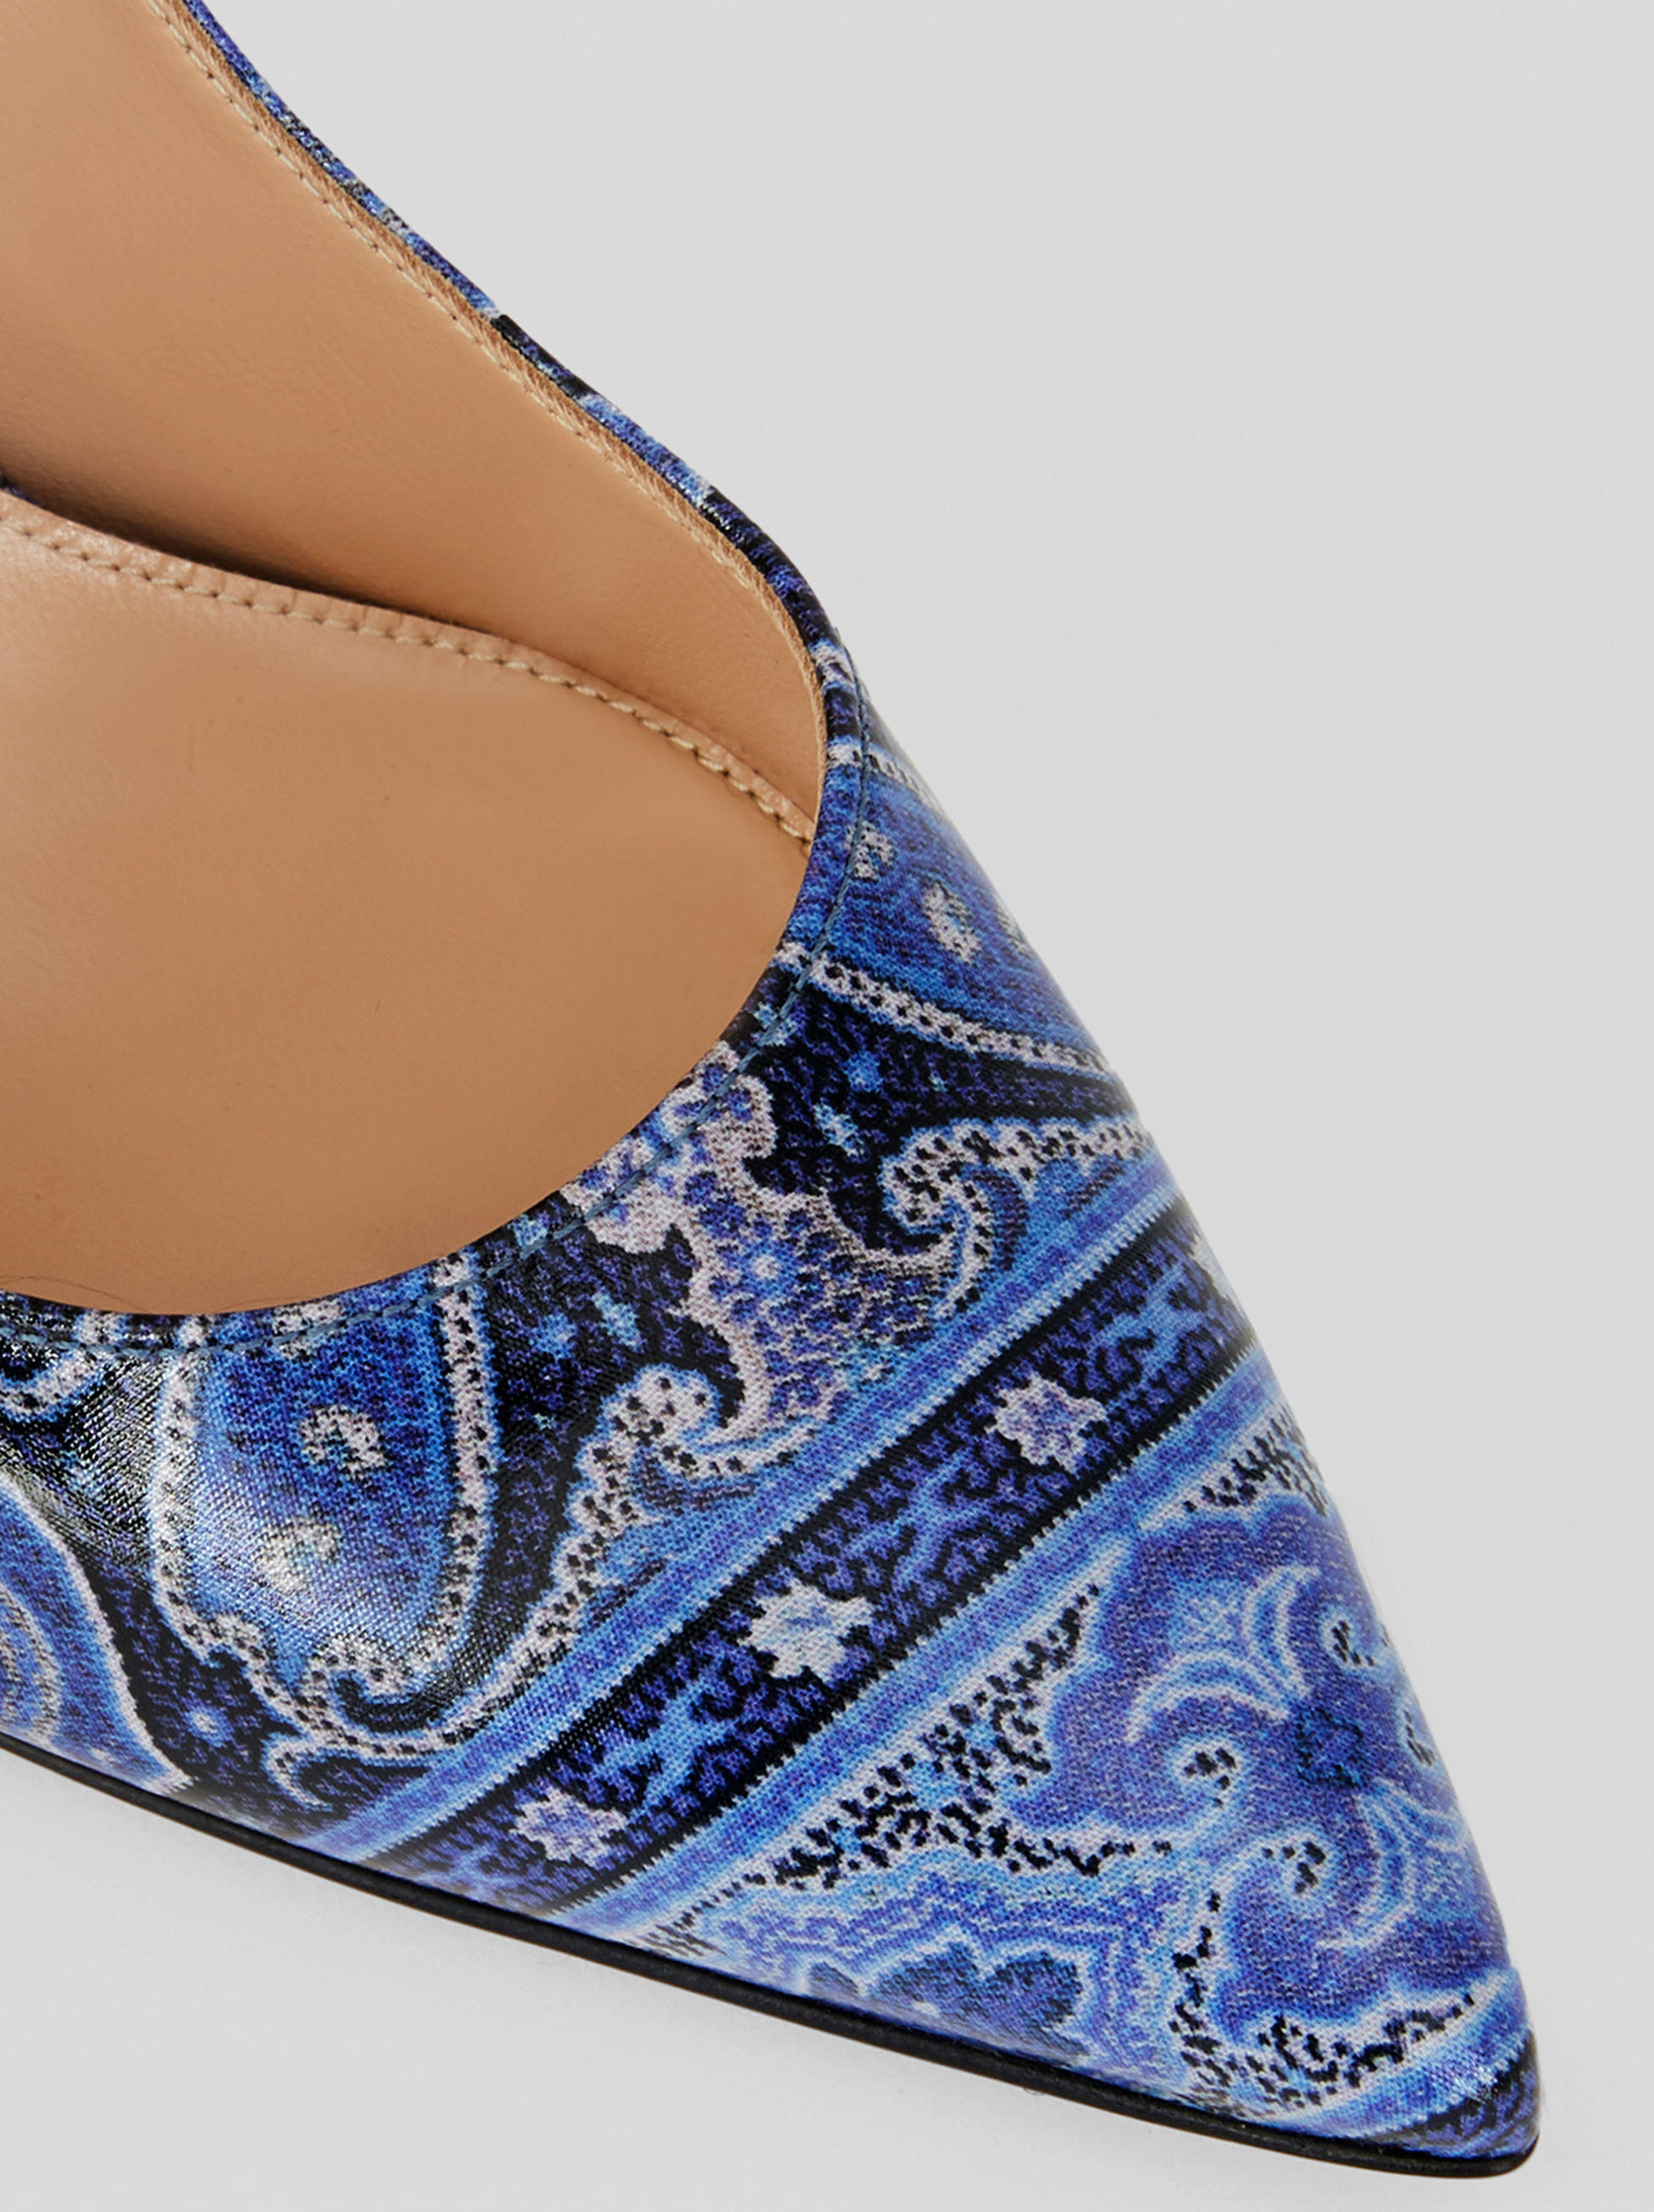 PAISLEY PRINT GIANVITO ROSSI COURT SHOES FOR ETRO